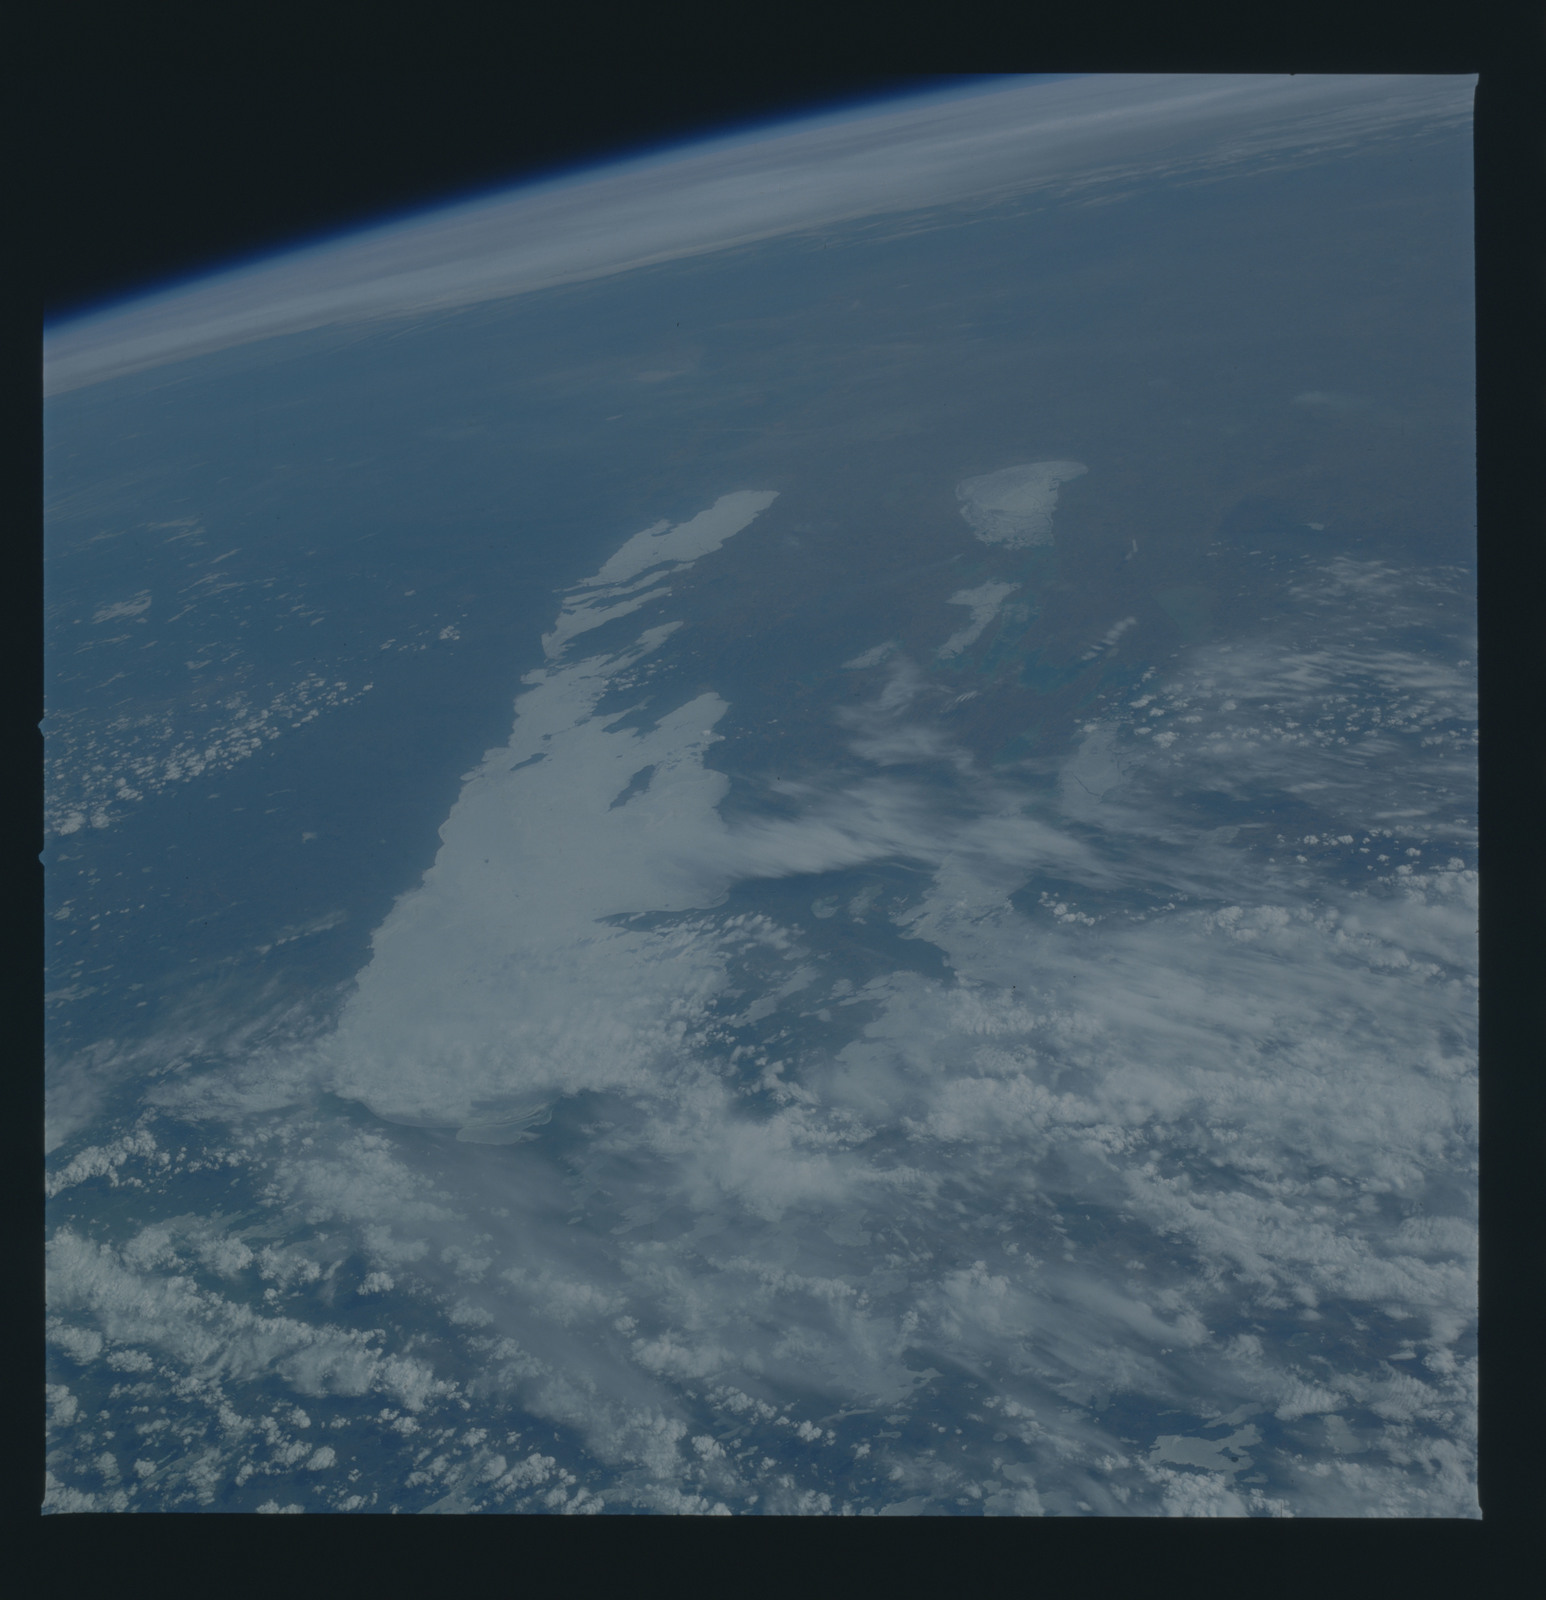 51B-44-006 - STS-51B - 51B earth observation